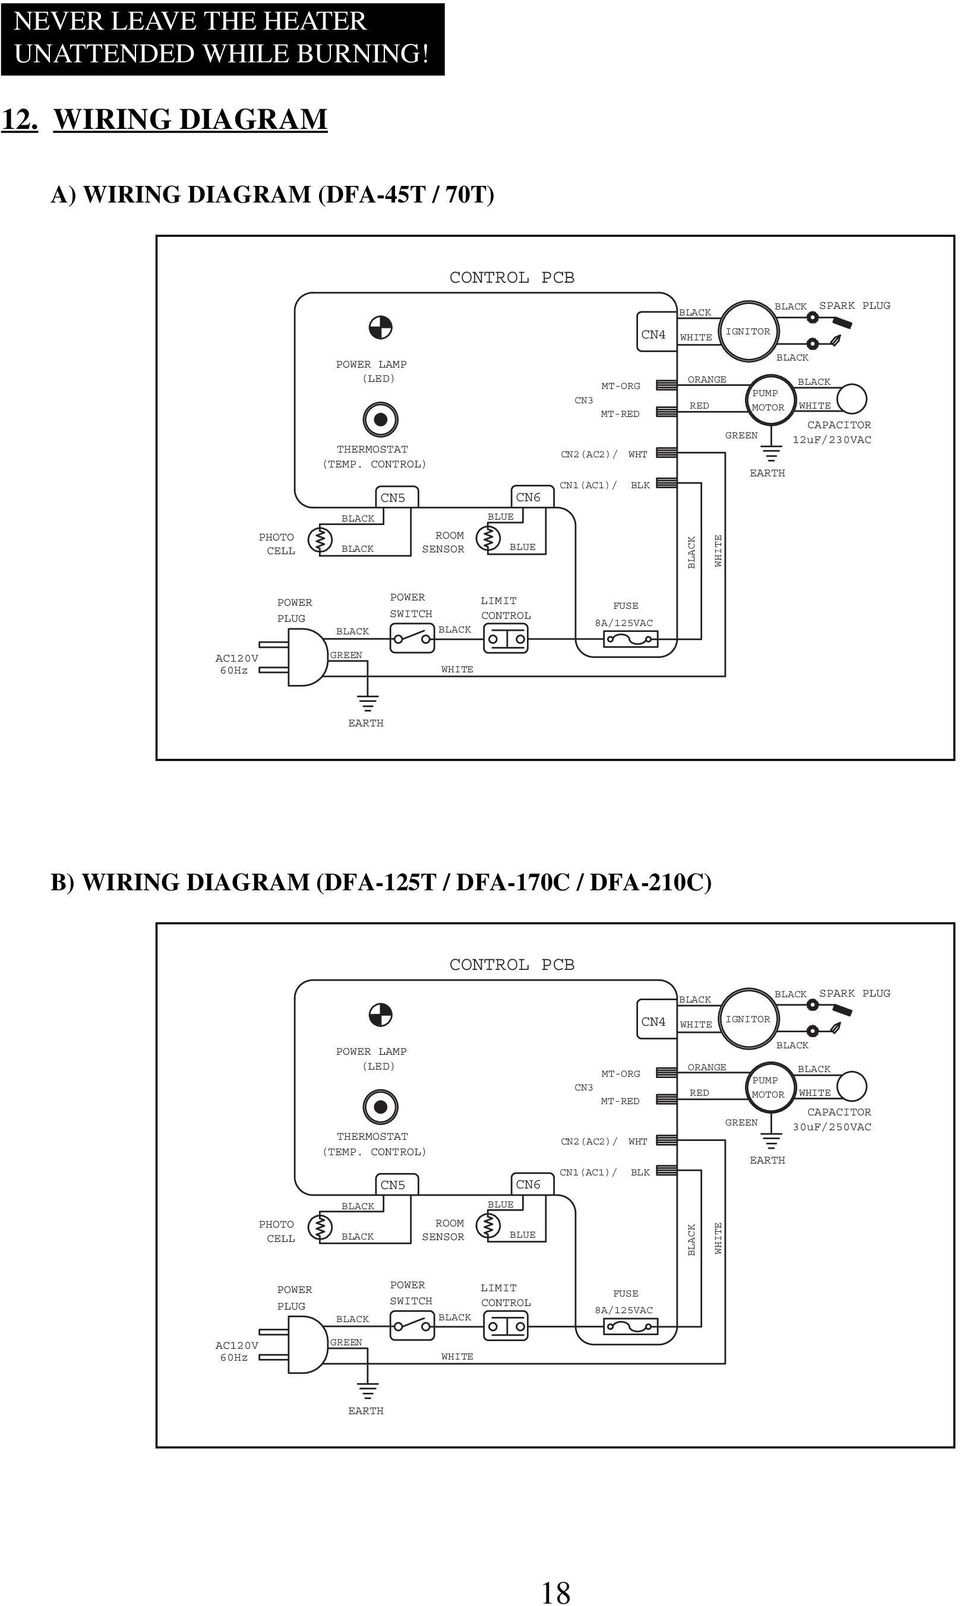 Portable Forced Air Heaters User S Manual Pdf Schematic Diagrams And Circuits 600 Watt Hifi Power Amplifiers Pa600 Switch Black Limit Control Fuse 8a 125vac Ac120v 60hz Green White Earth B